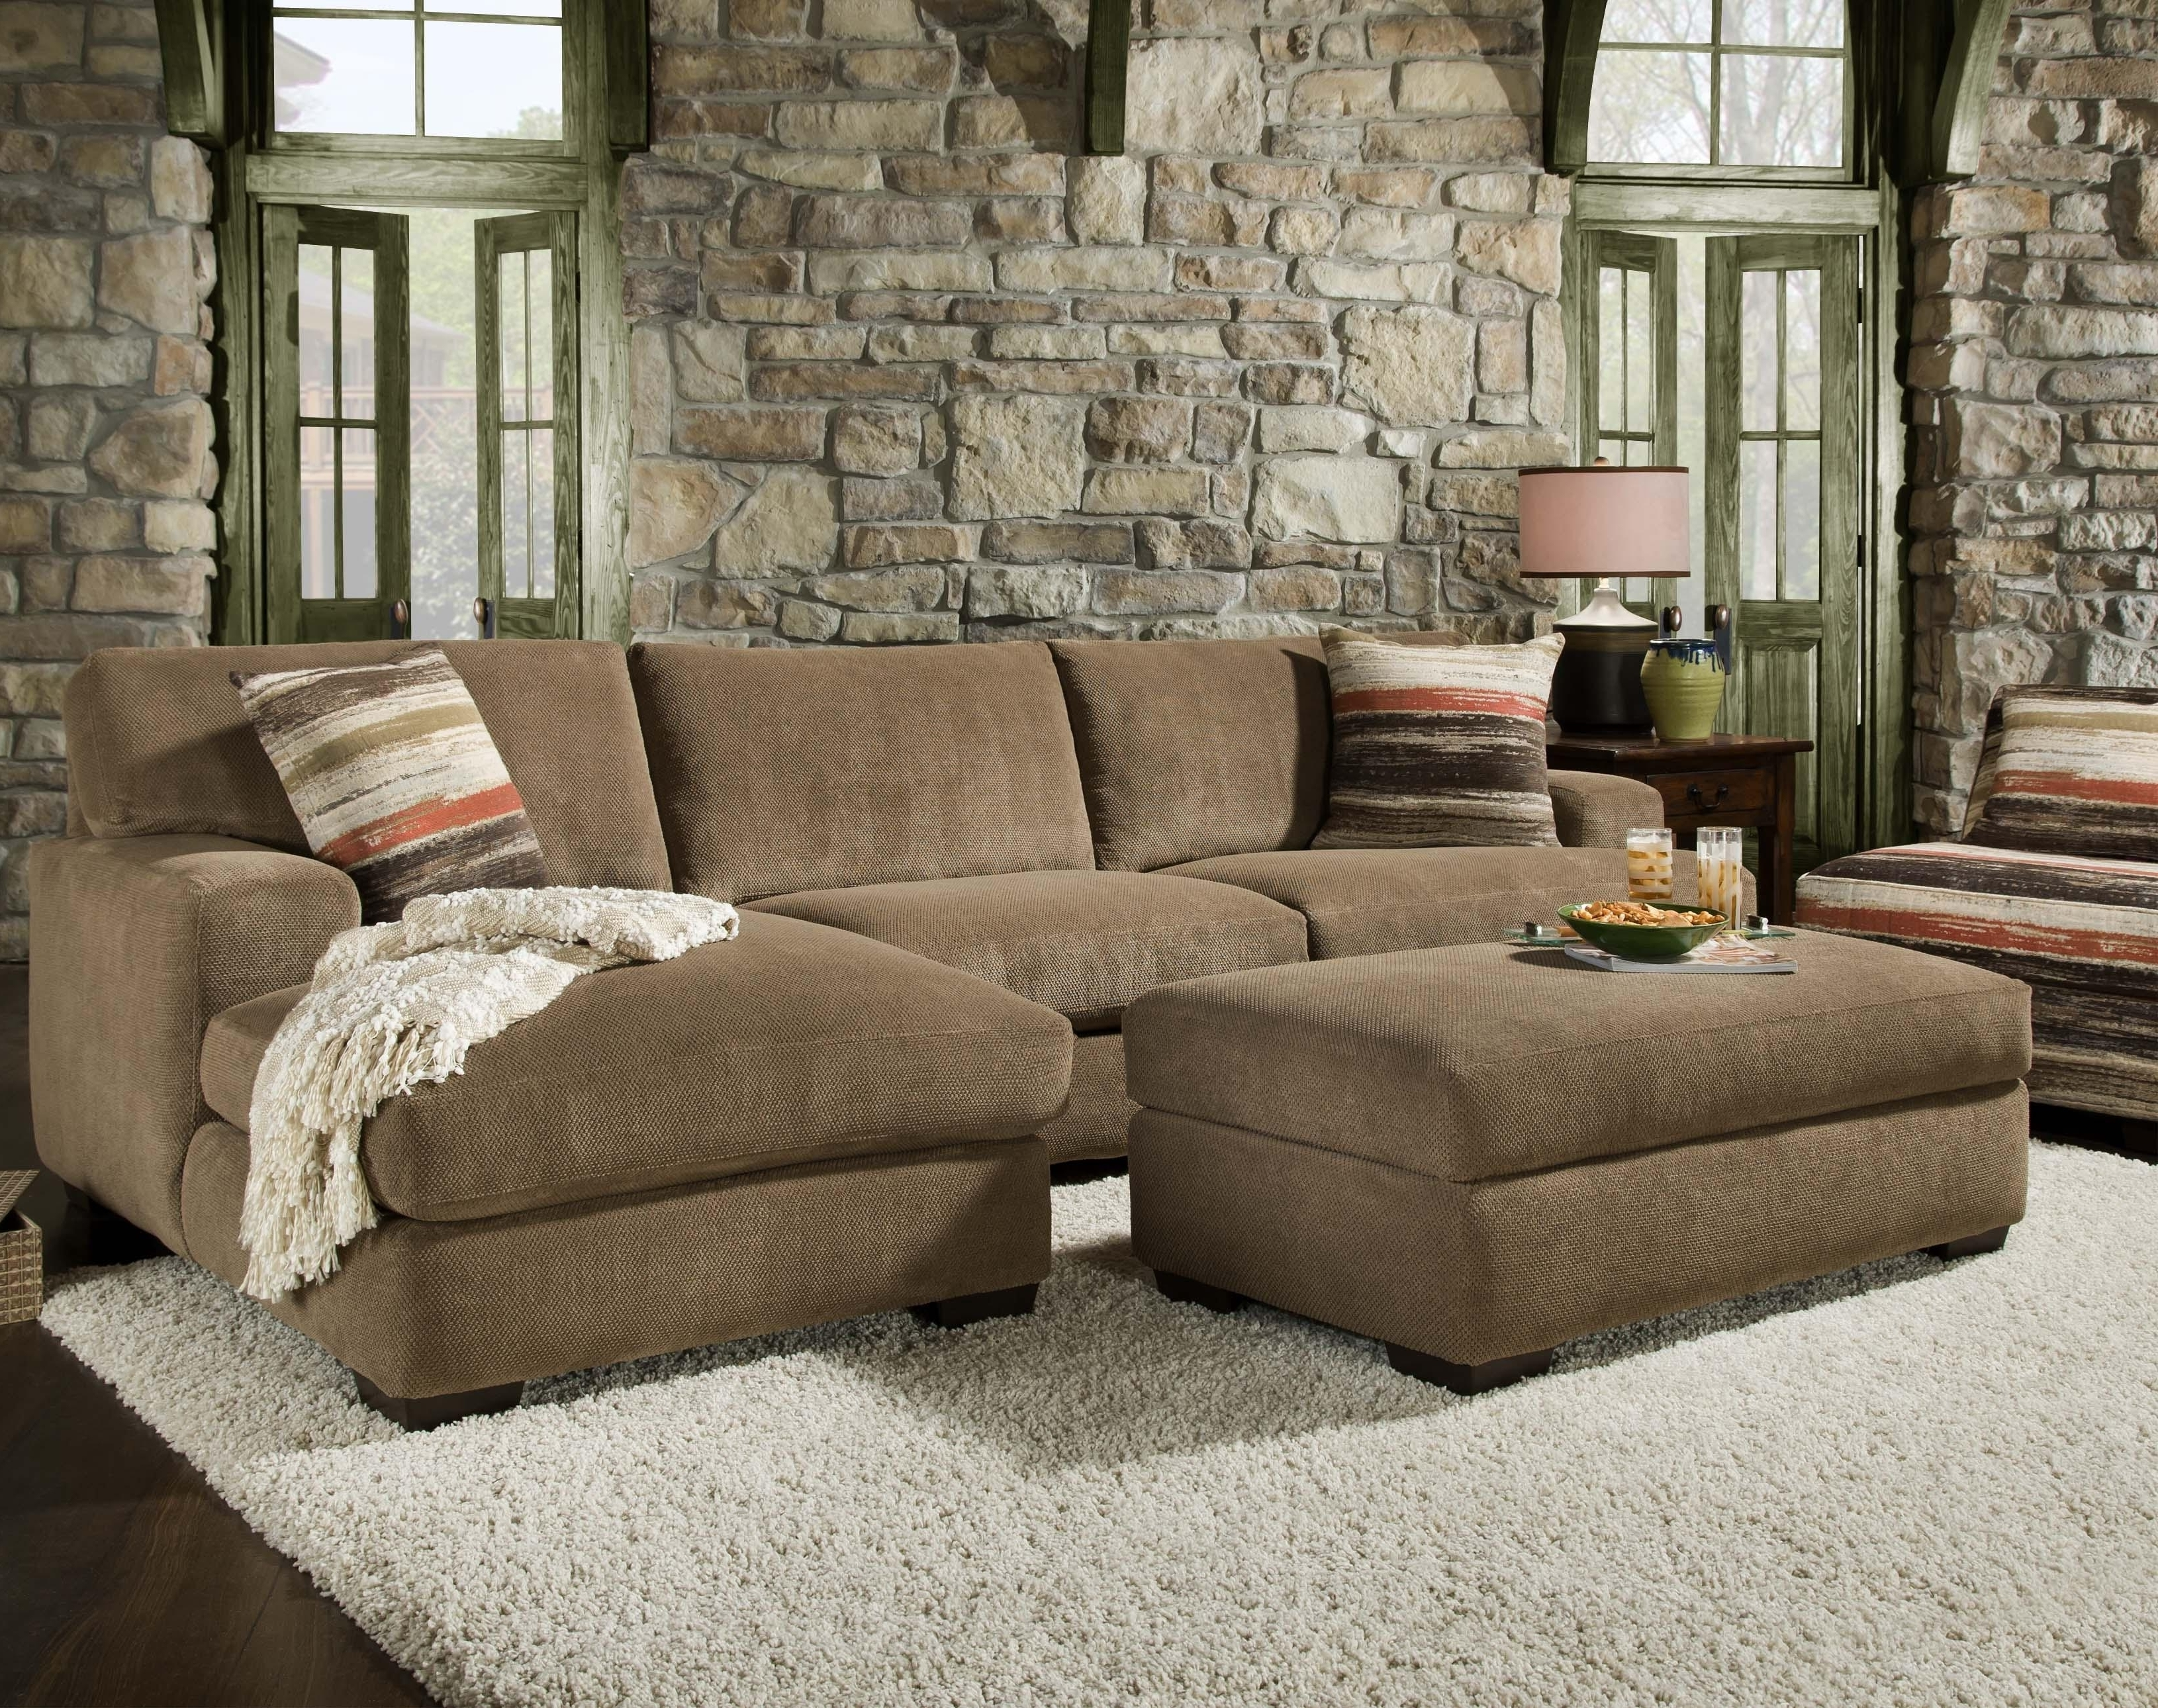 Fashionable Inexpensive Sectional Sofas For Small Spaces Inside Sofas : Mini Sofa Inexpensive Couches Small Scale Sectionals Cheap (View 11 of 15)